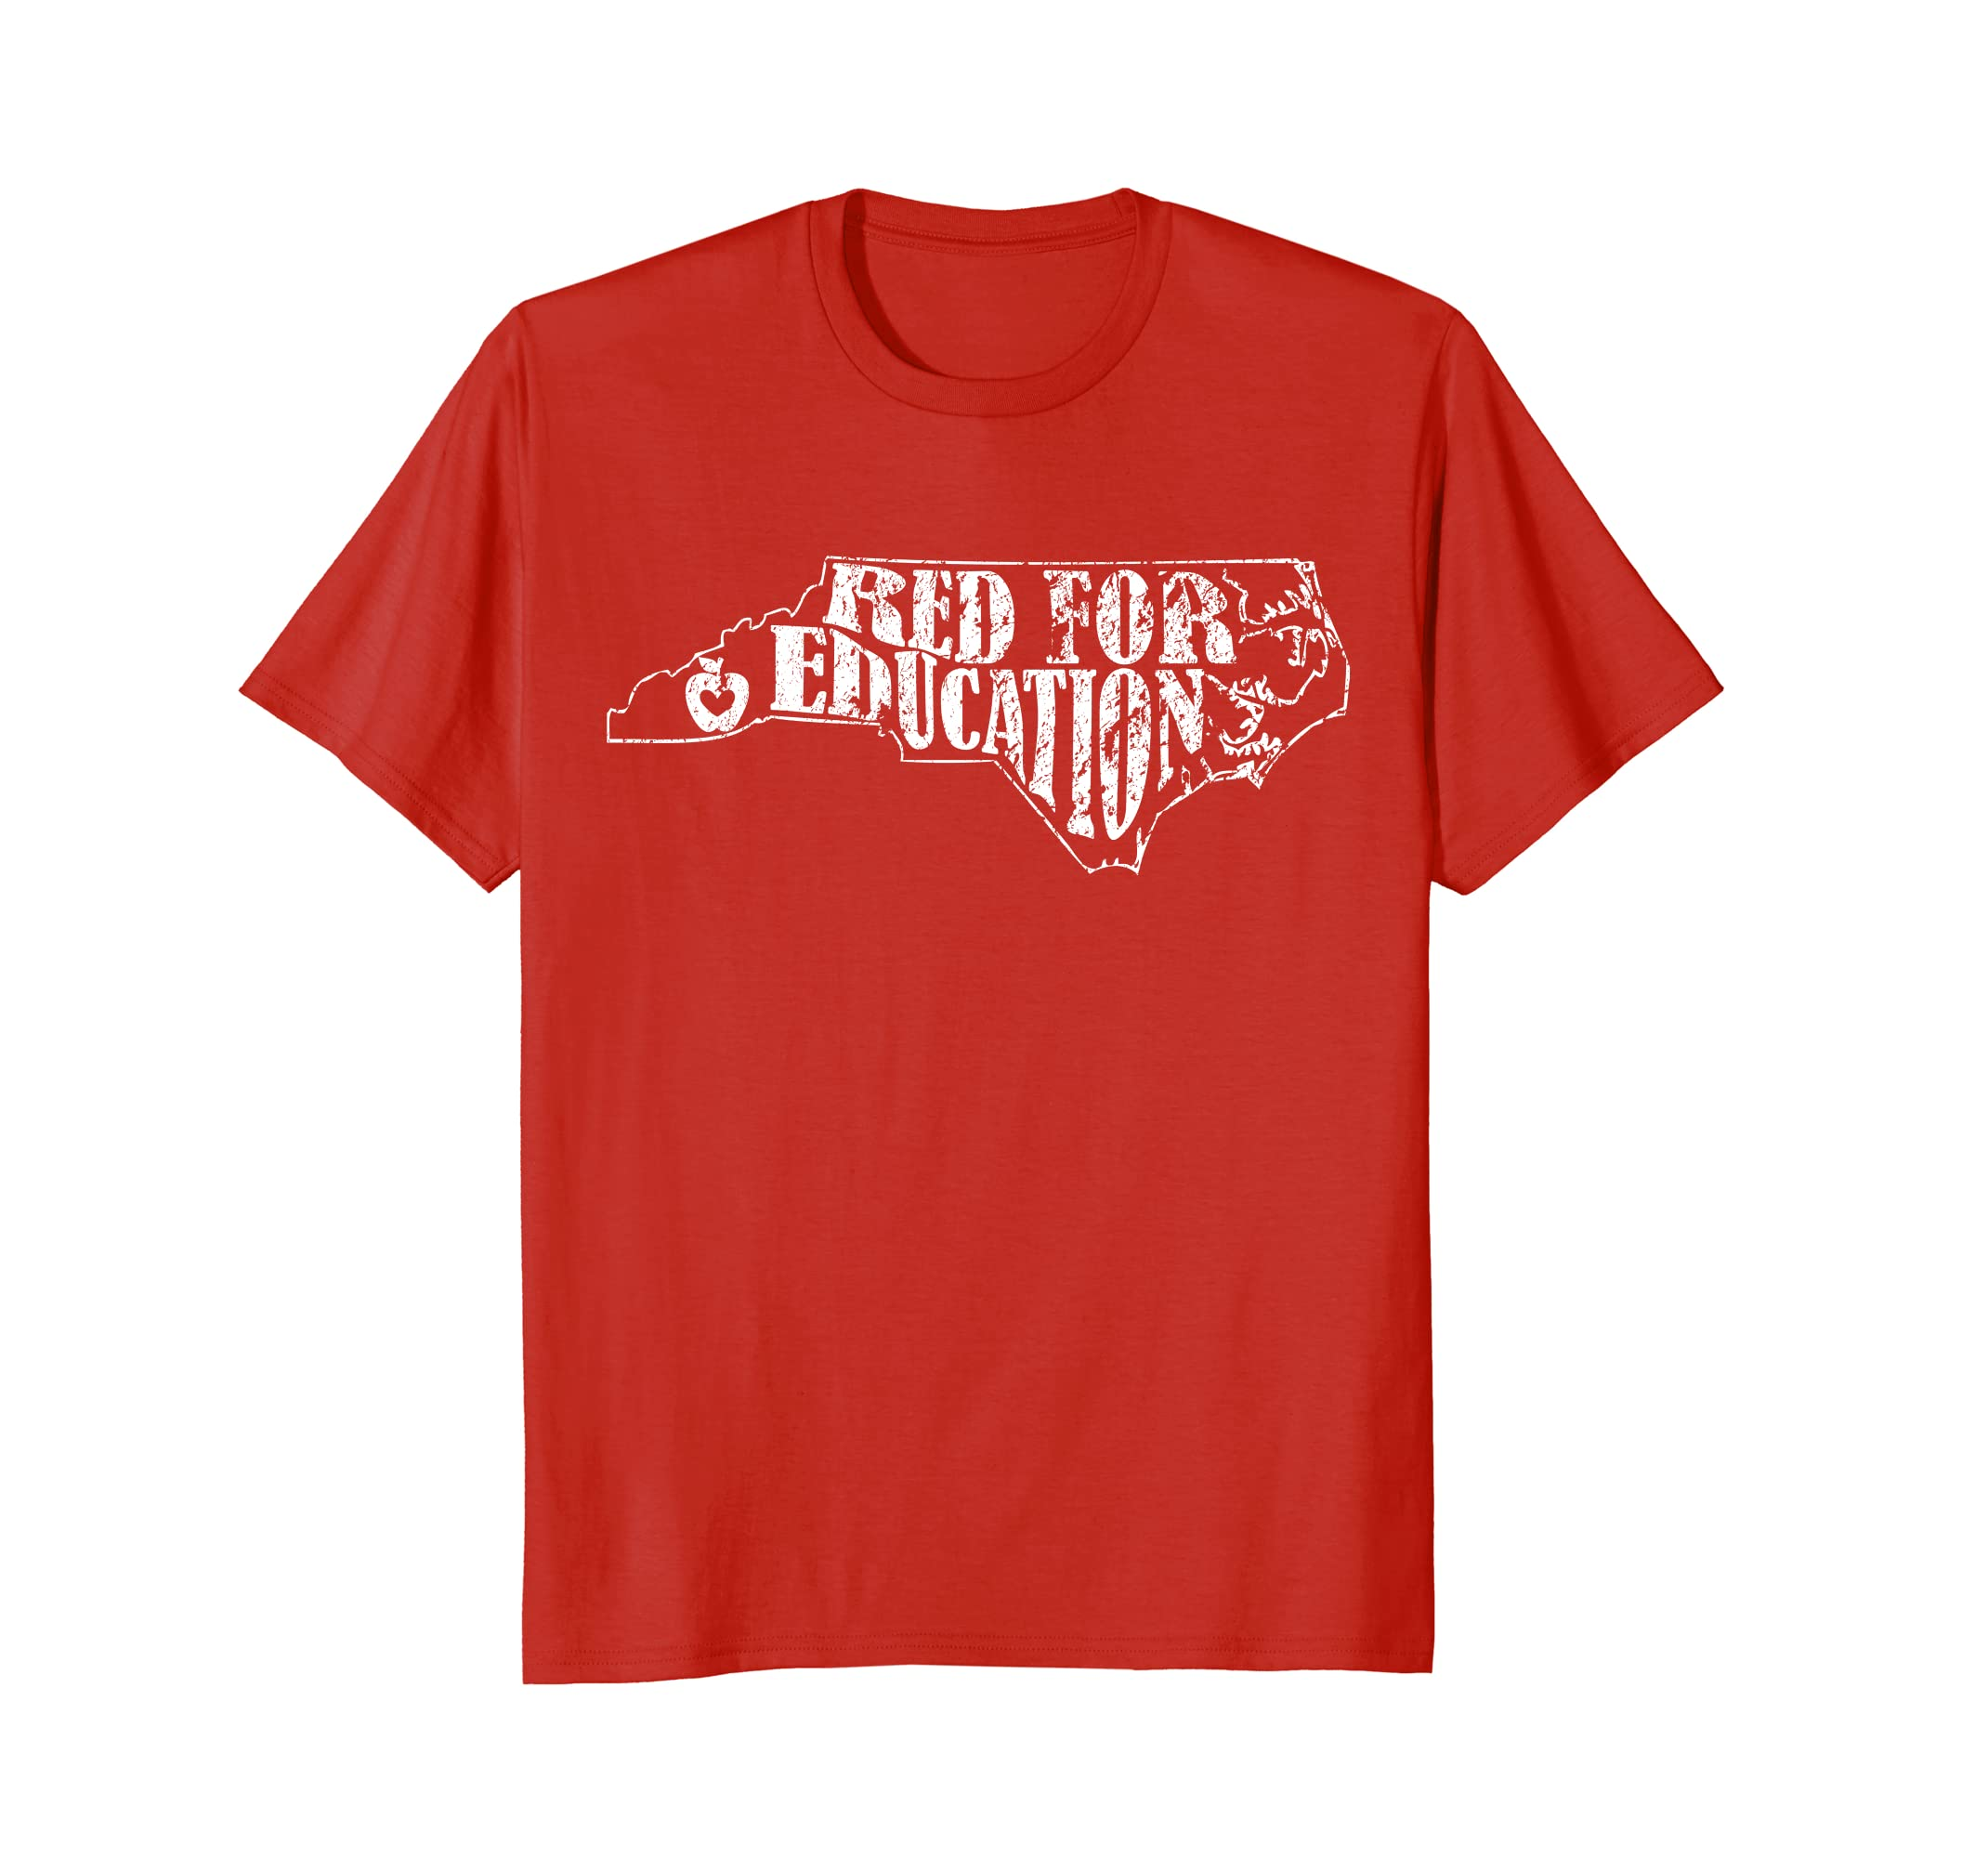 Distressed North Carolina NC Red for Ed Shirt Women Men Kids-alottee gift